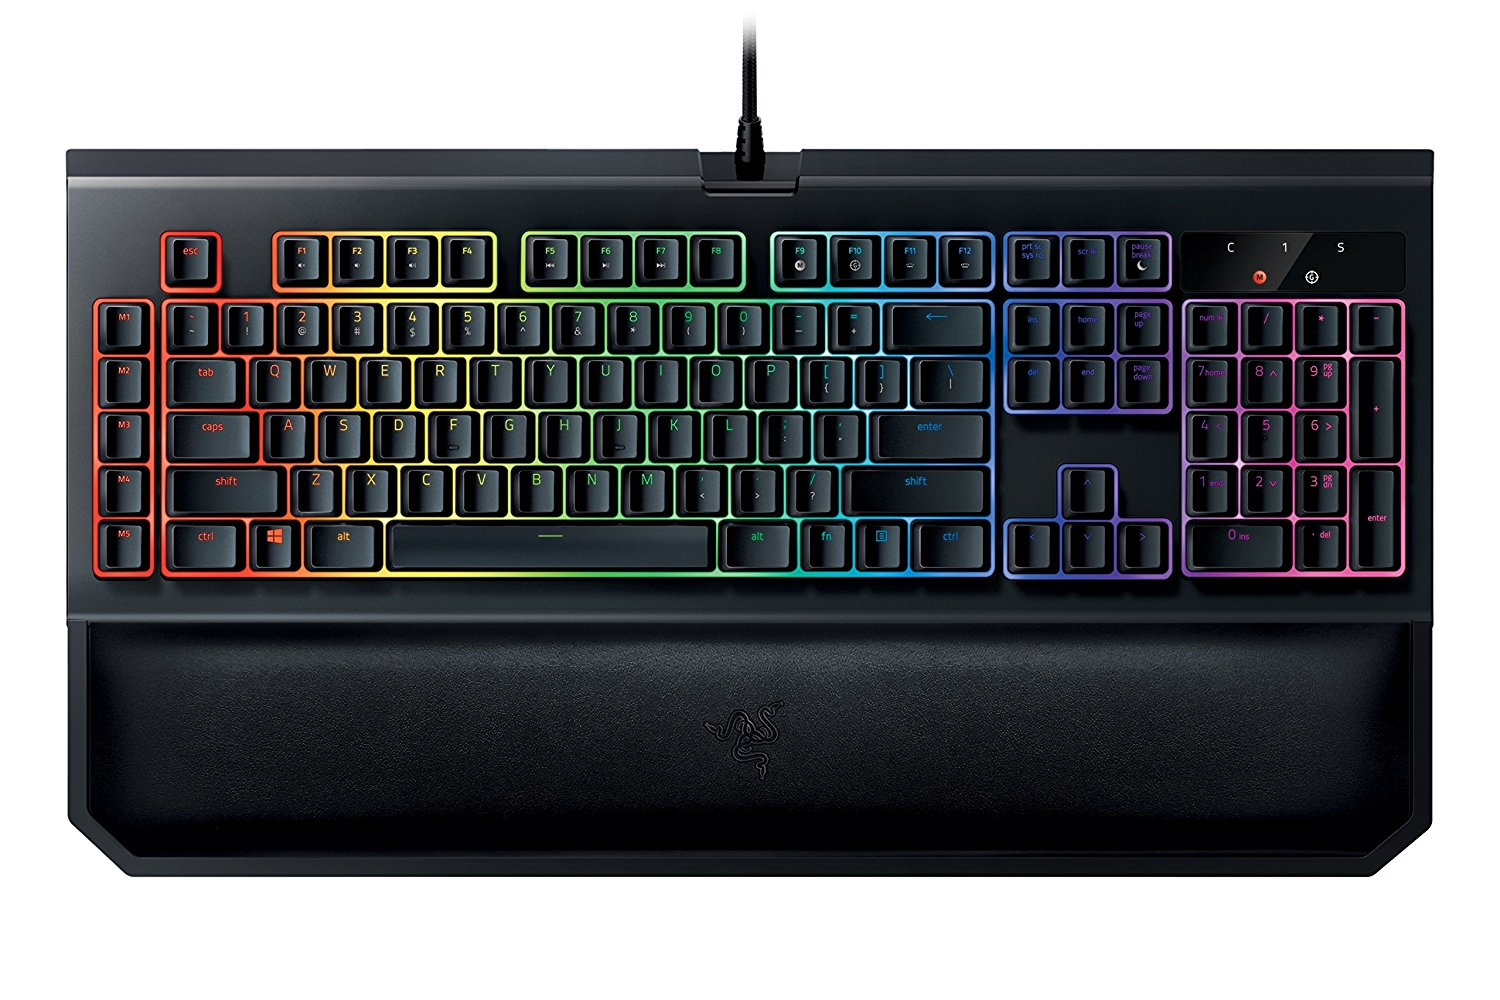 Picture of Razer Blackwidow keyboard